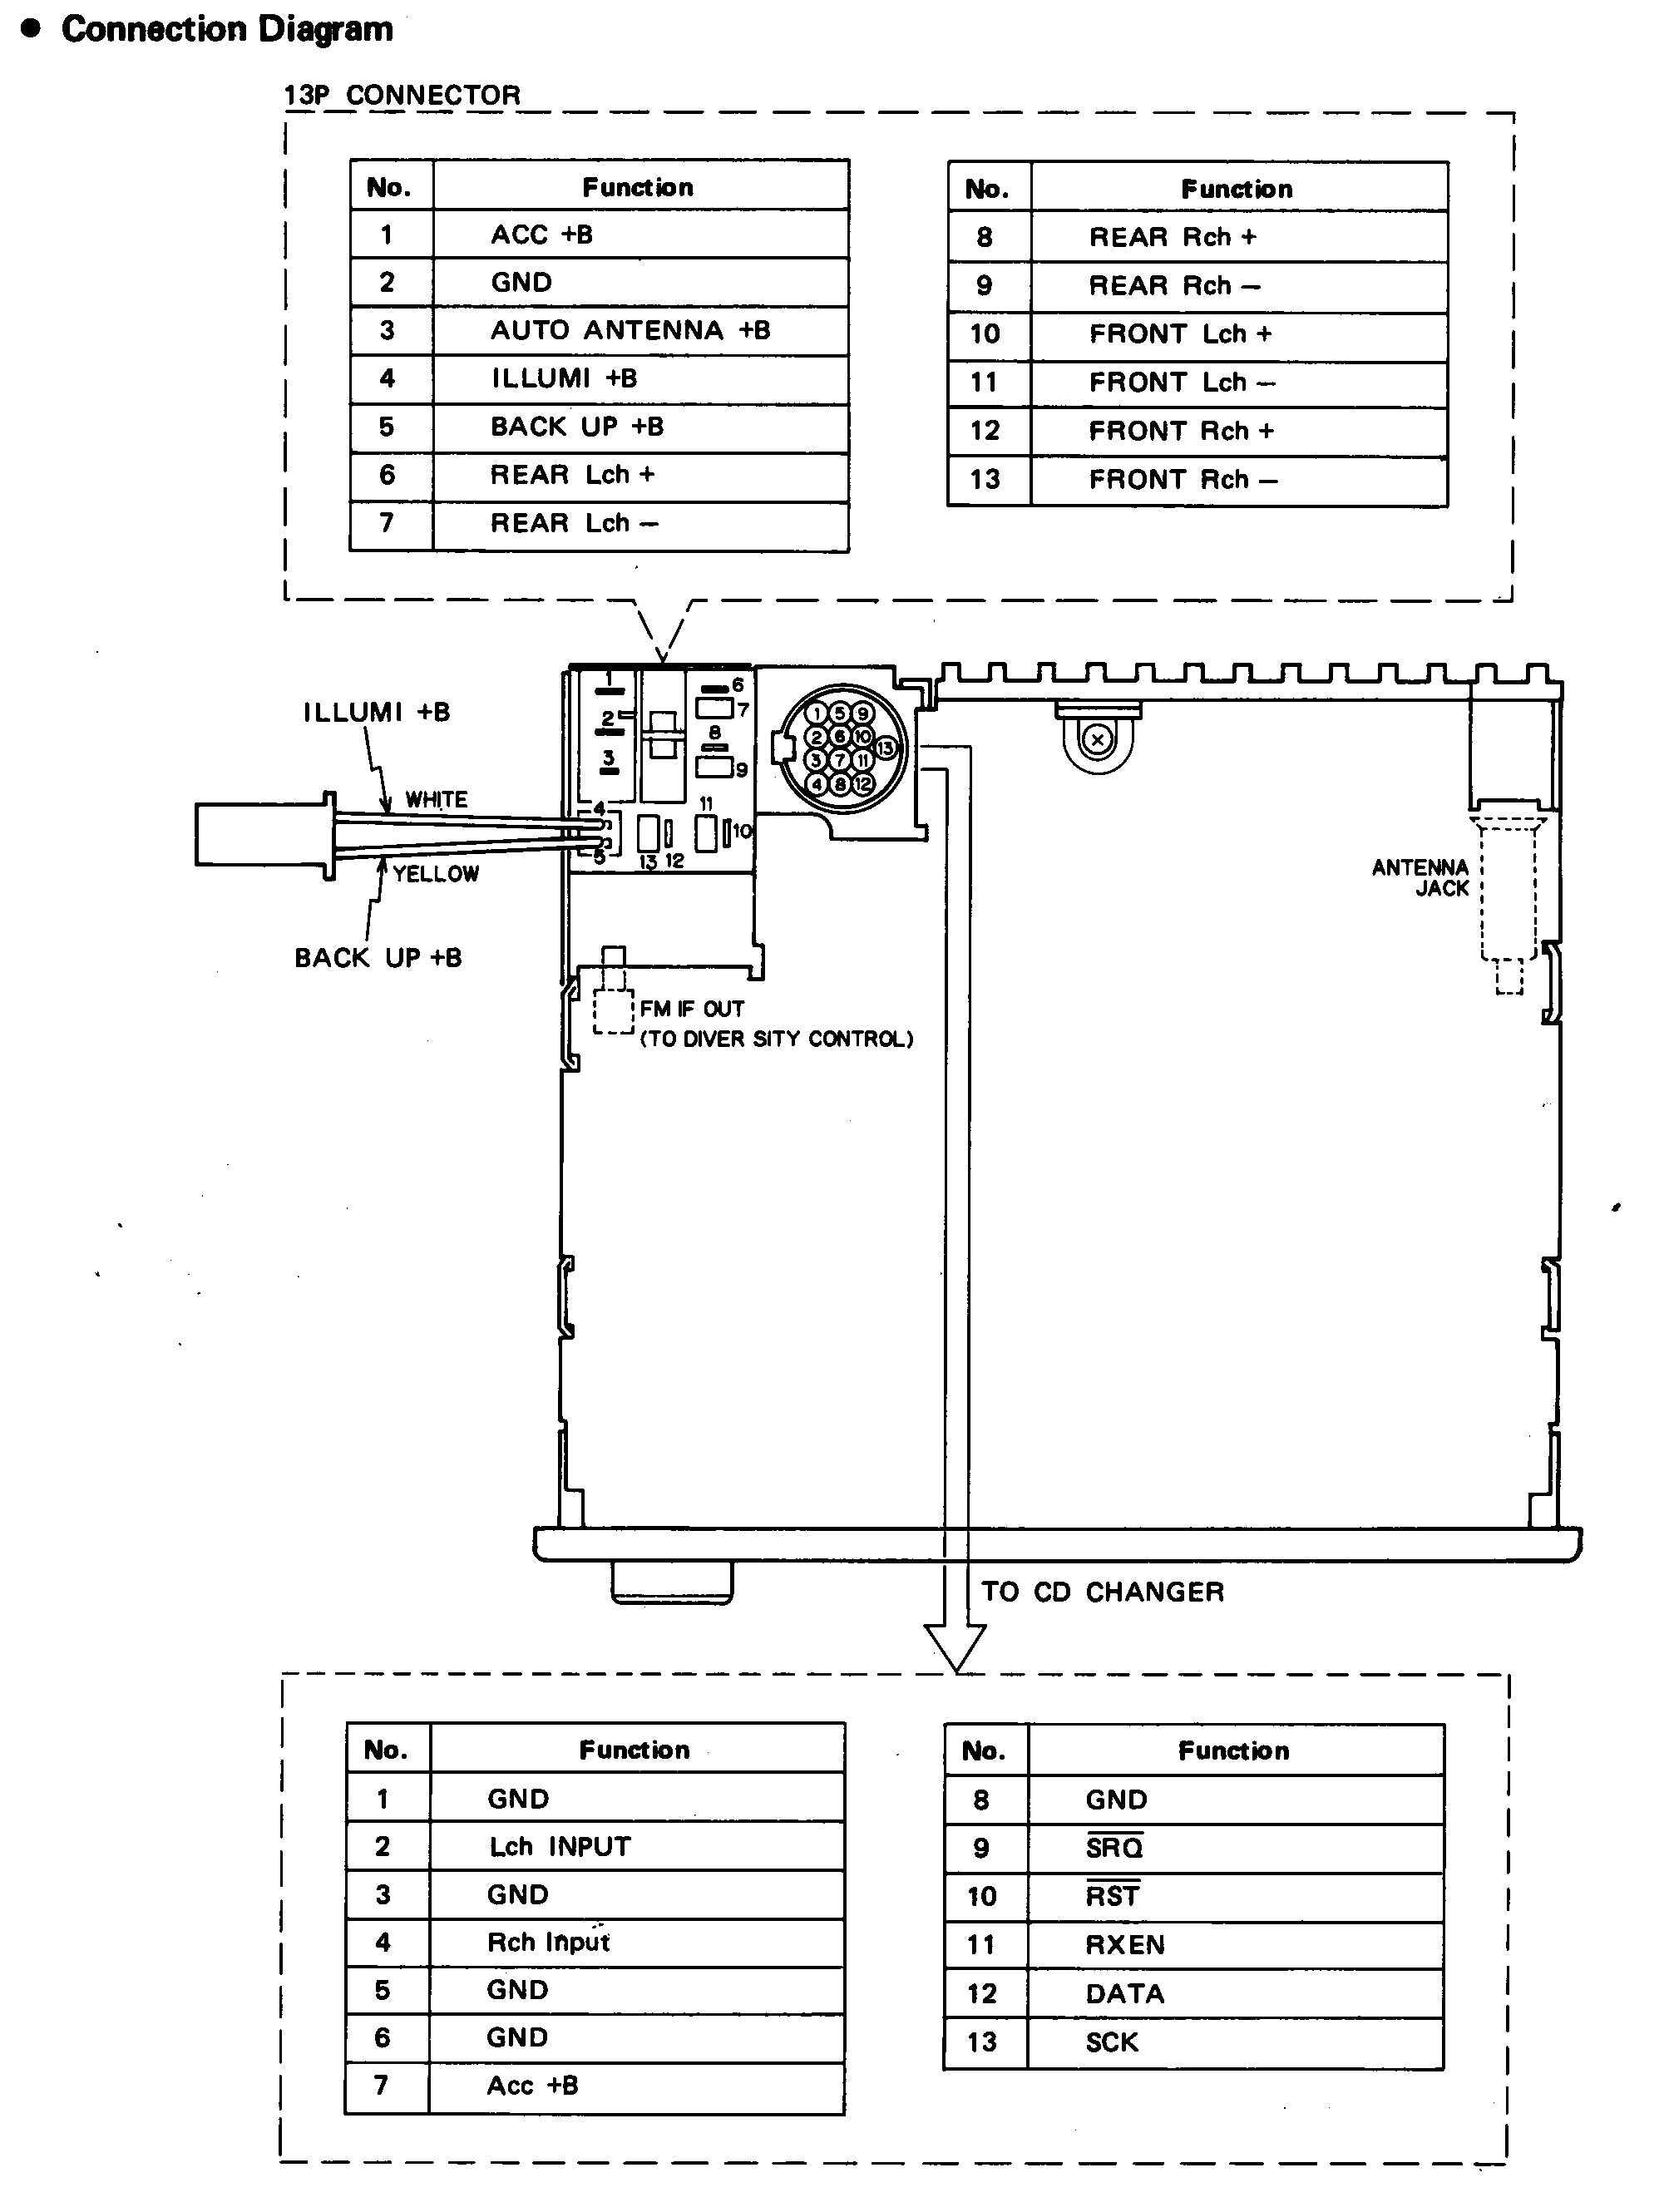 WireHarnessBMW121701 1996 jeep grand cherokee car stereo radio wiring diagram wiring 2002 jeep cherokee radio wiring diagram at pacquiaovsvargaslive.co